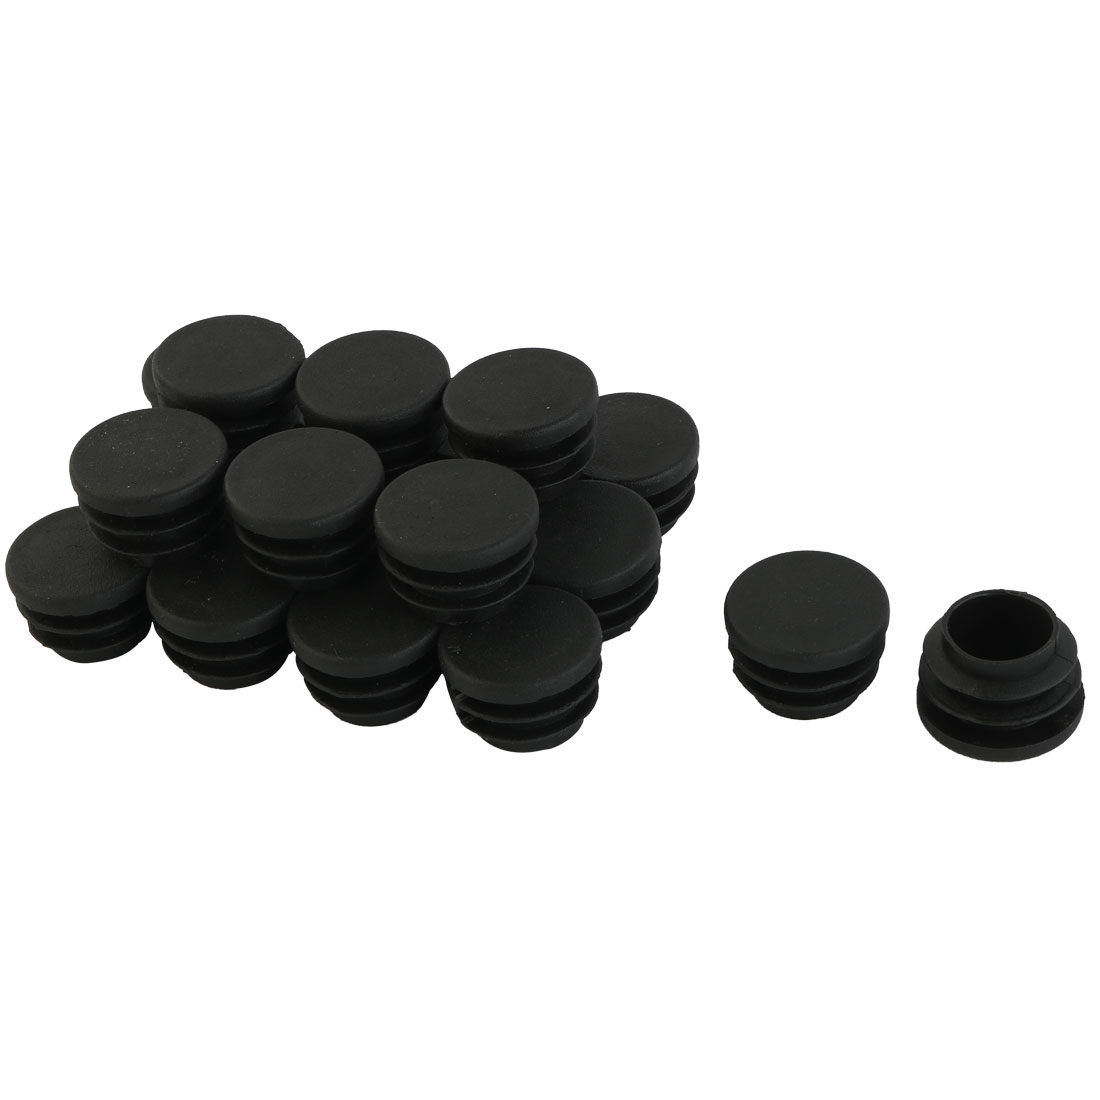 20pcs Round Blanking End Cap Caps Tubing Pipe Insert Bung